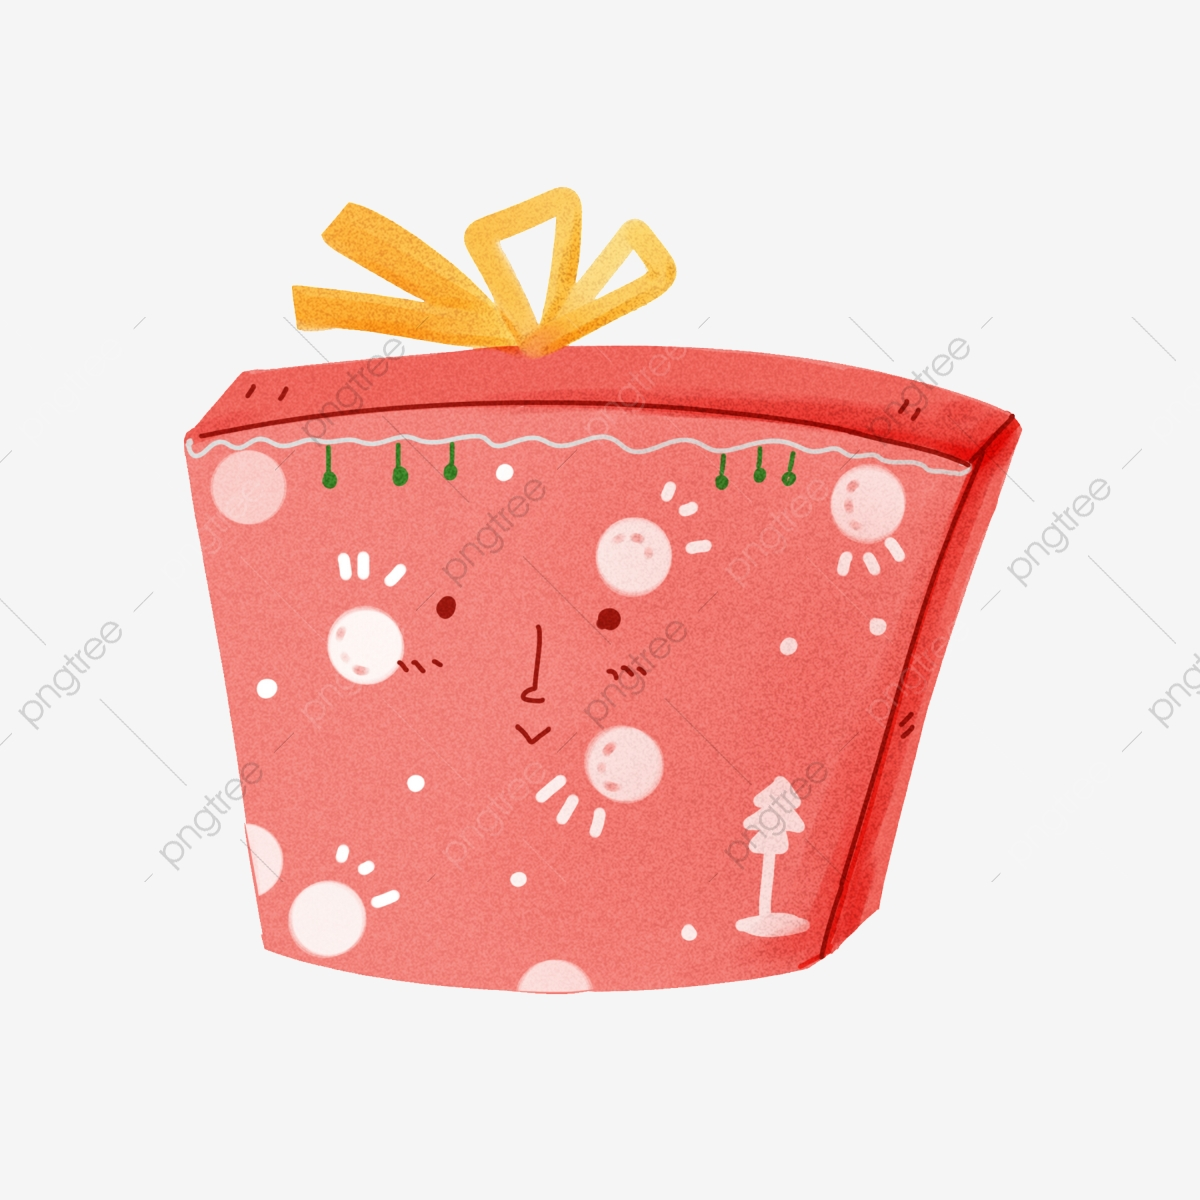 Free Images Of Christmas Presents, Download Free Clip Art, Free Clip Art on  Clipart Library